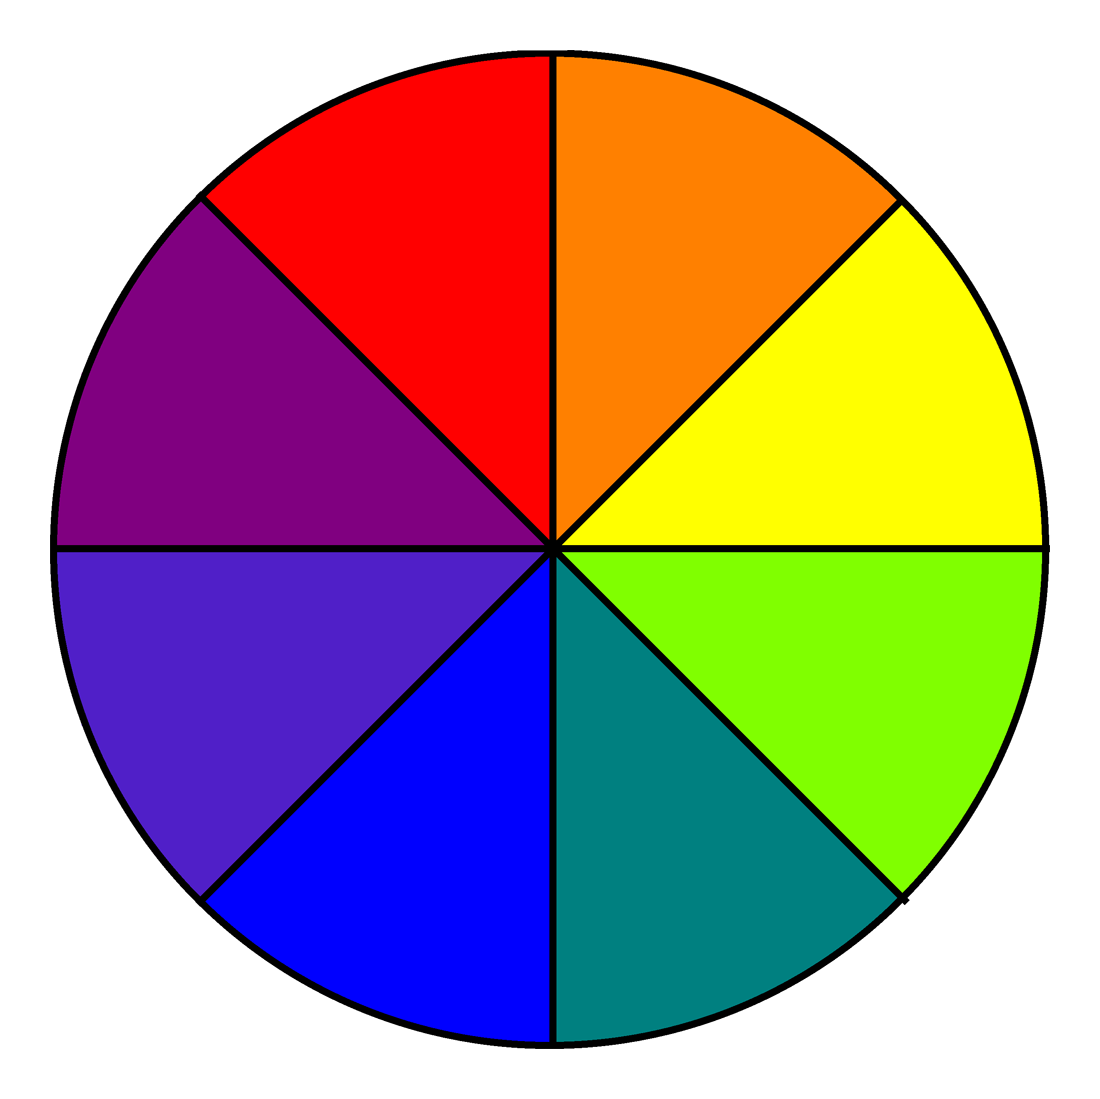 Use A Color Wheel